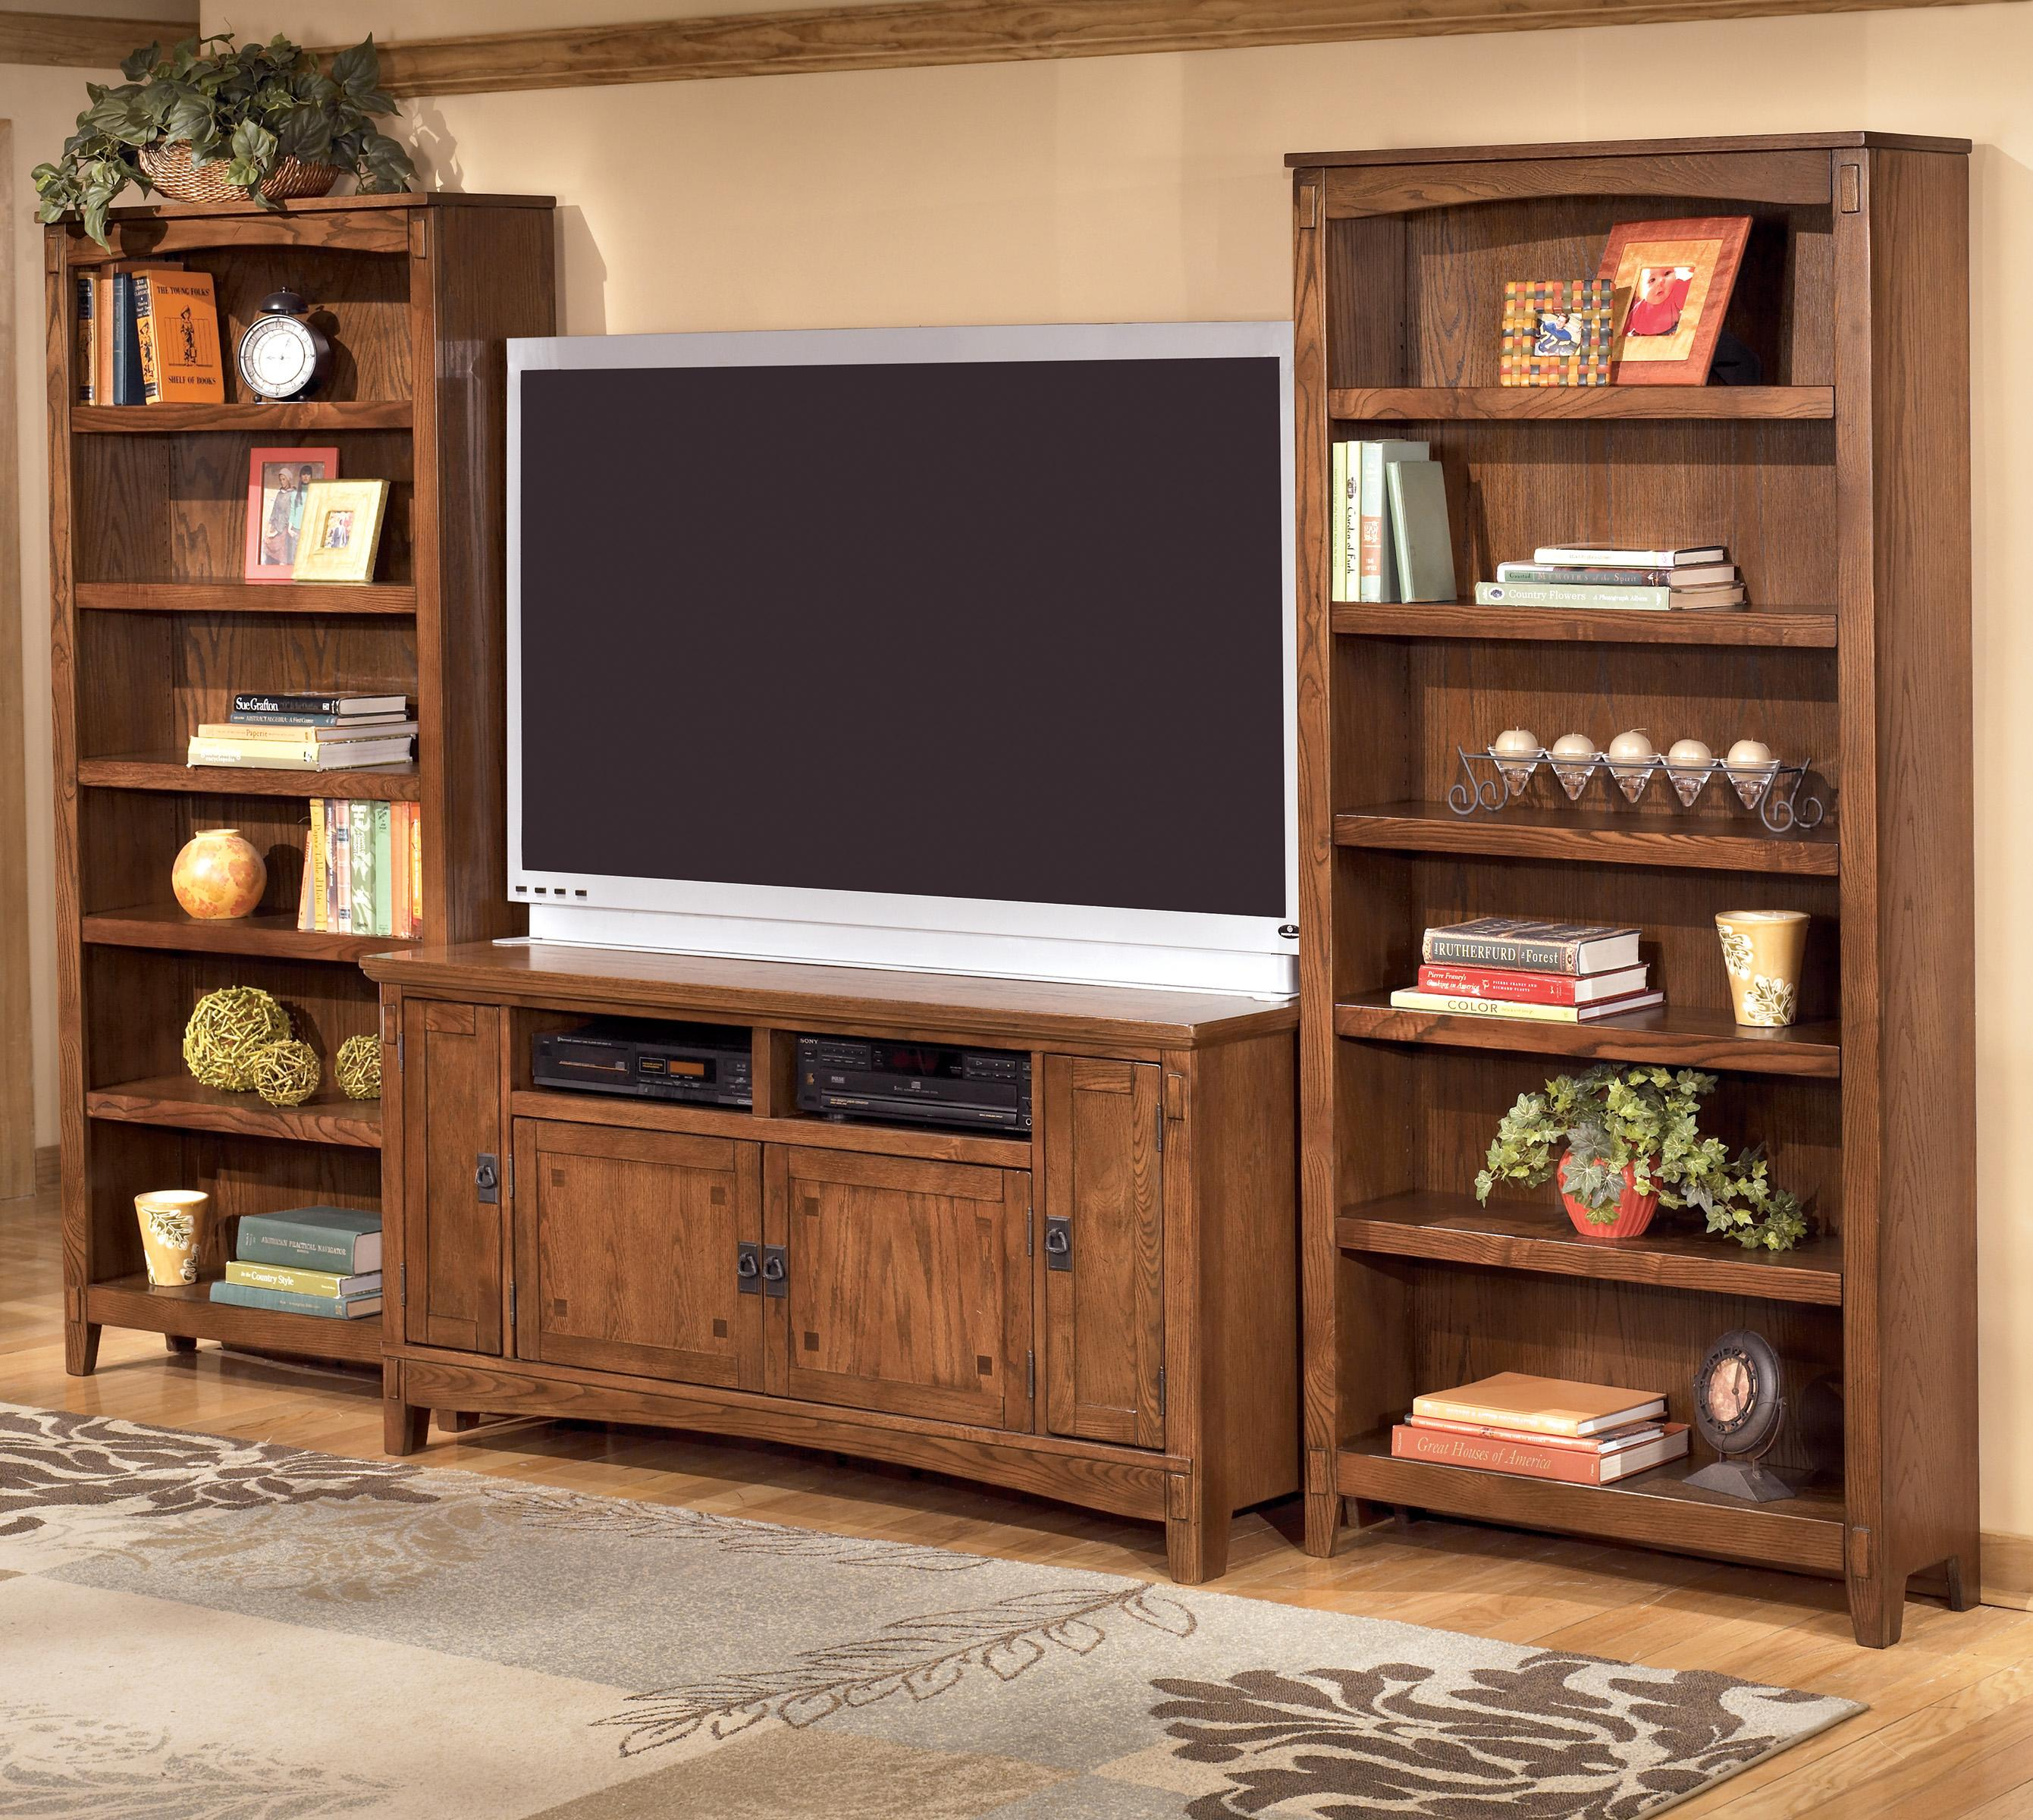 Ashley Furniture Cross Island 60 Inch Tv Stand 2 Large Bookcases Westrich Liances Wall Unit